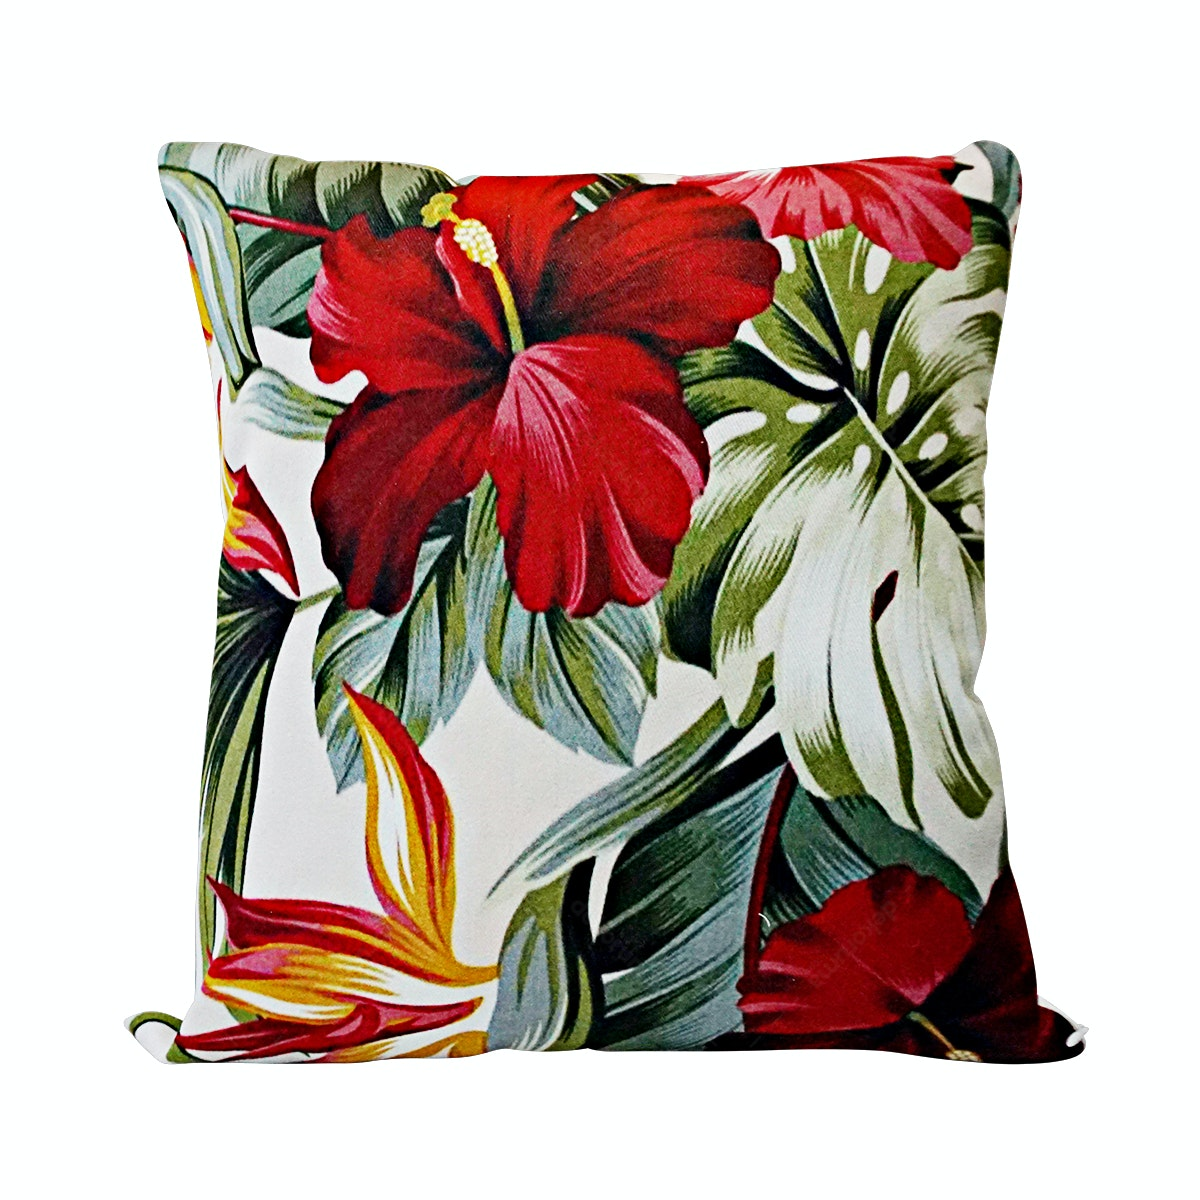 Megallery Cover Cushion C11 40x40cm